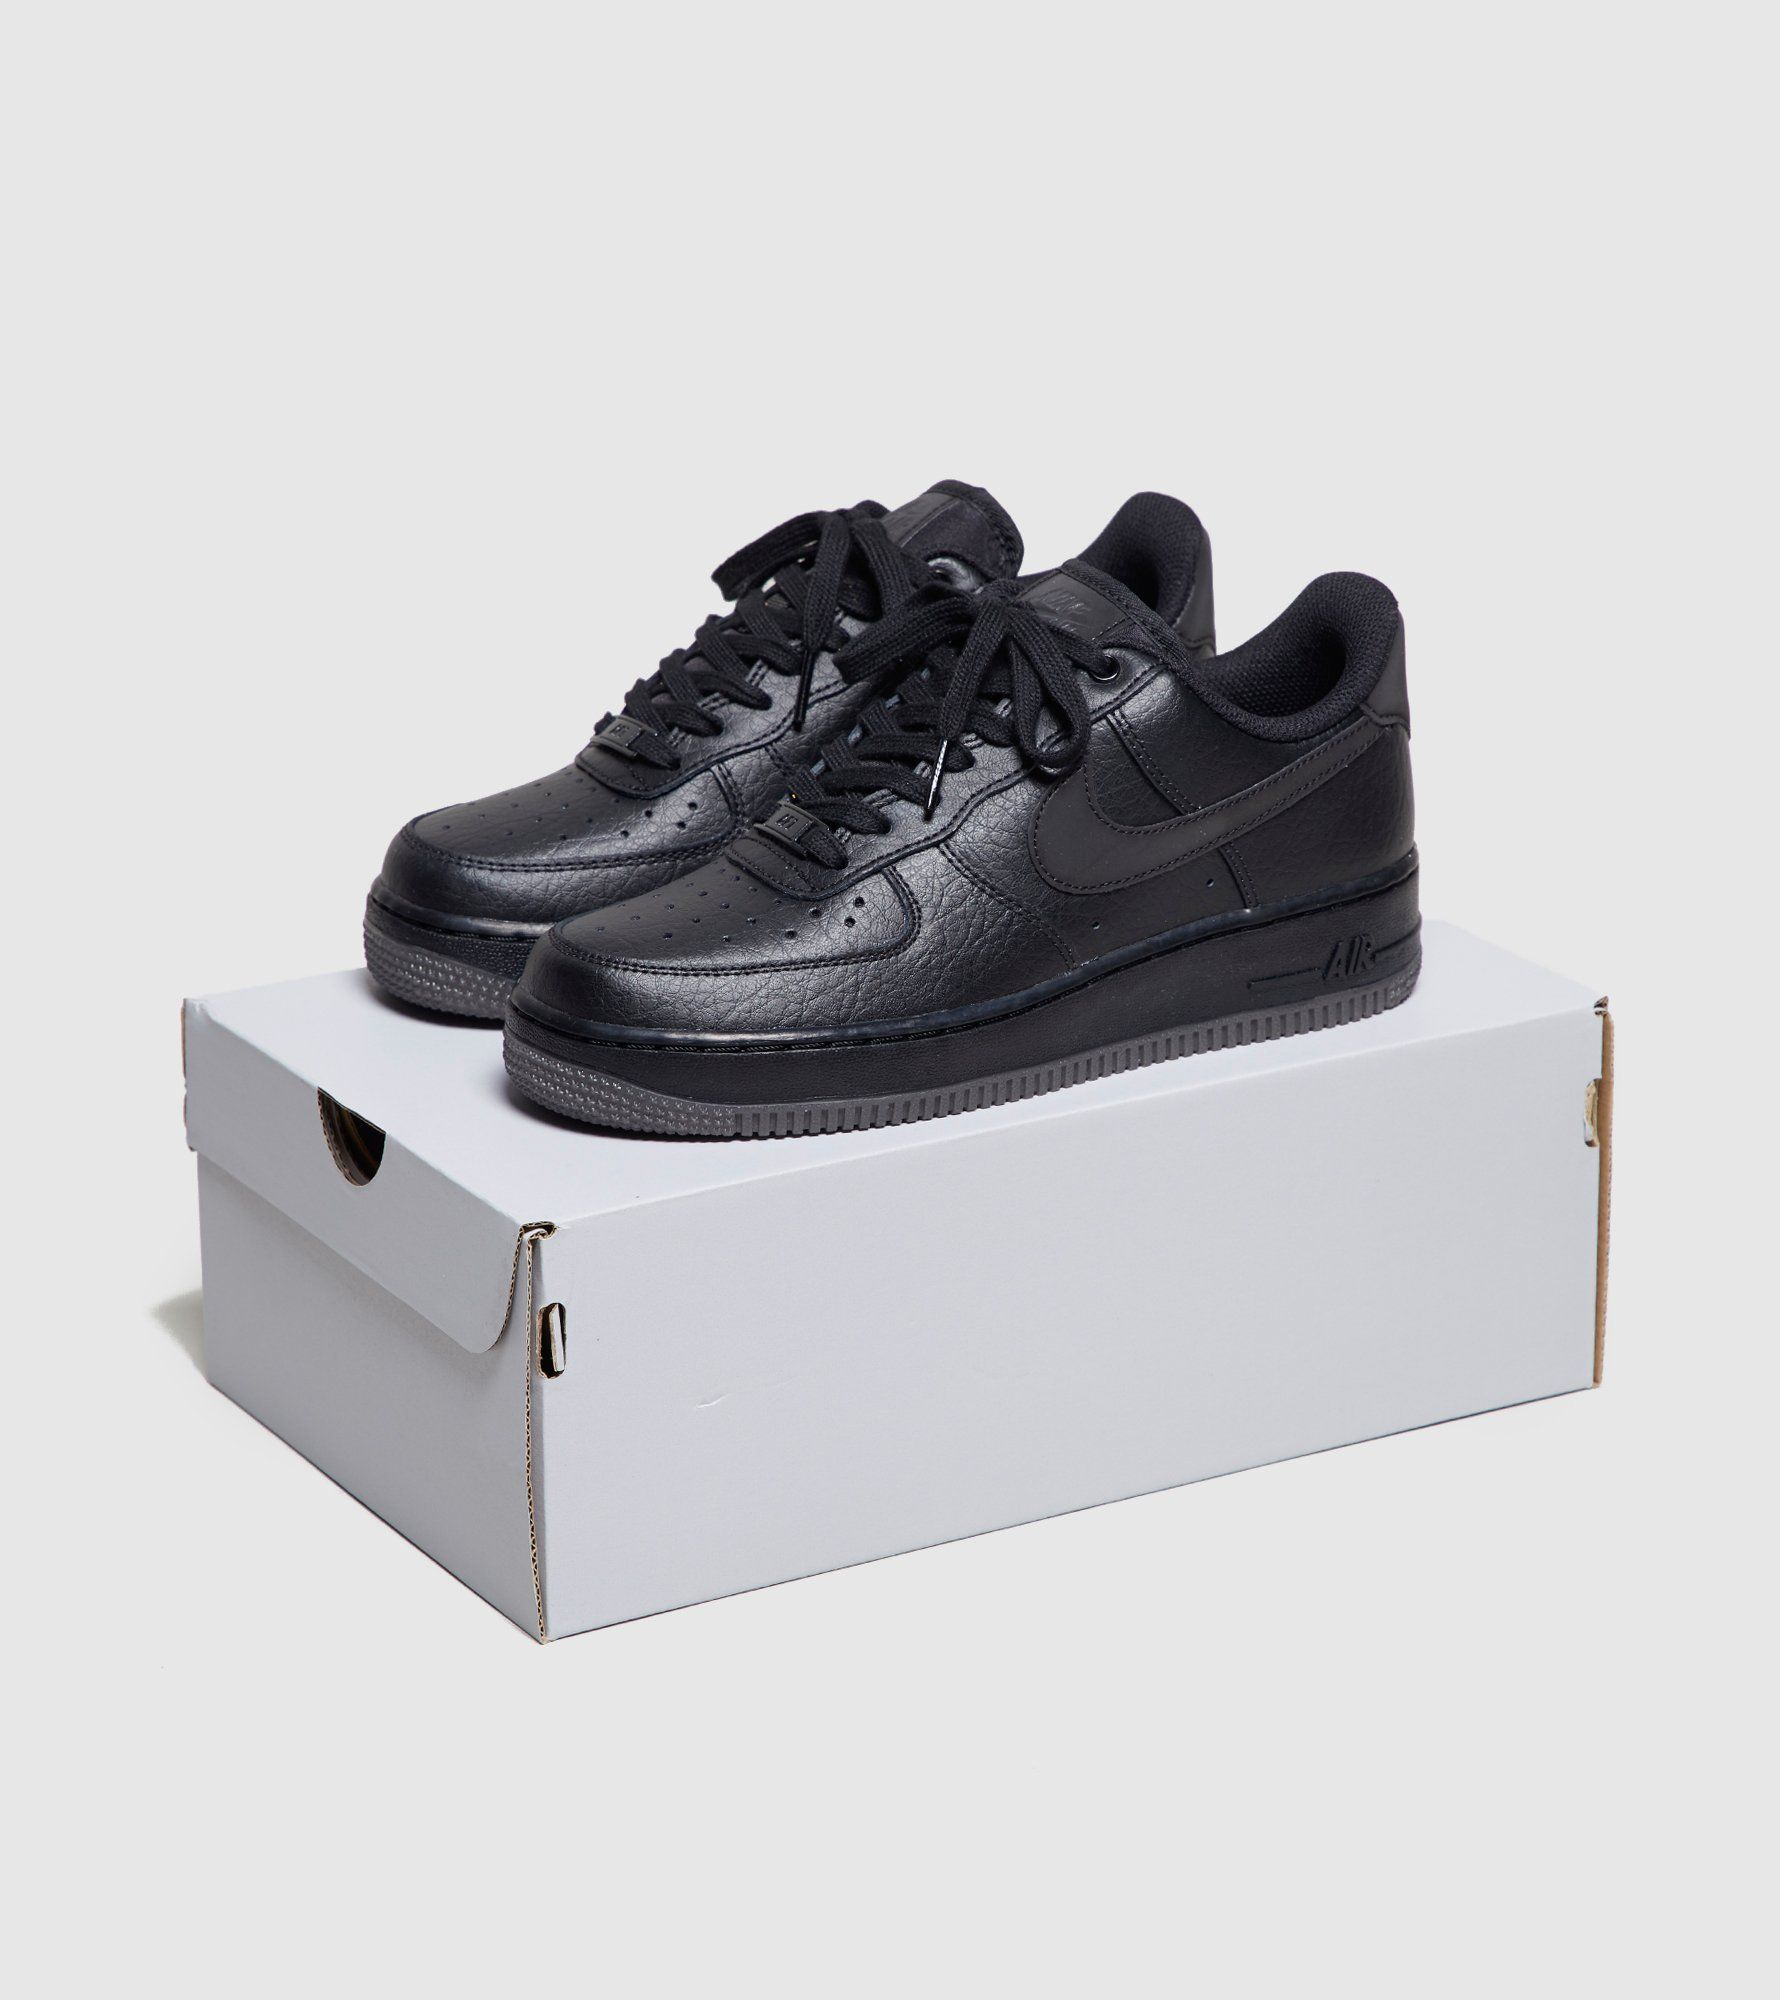 Nike Air Force 1 '07 Low Women's